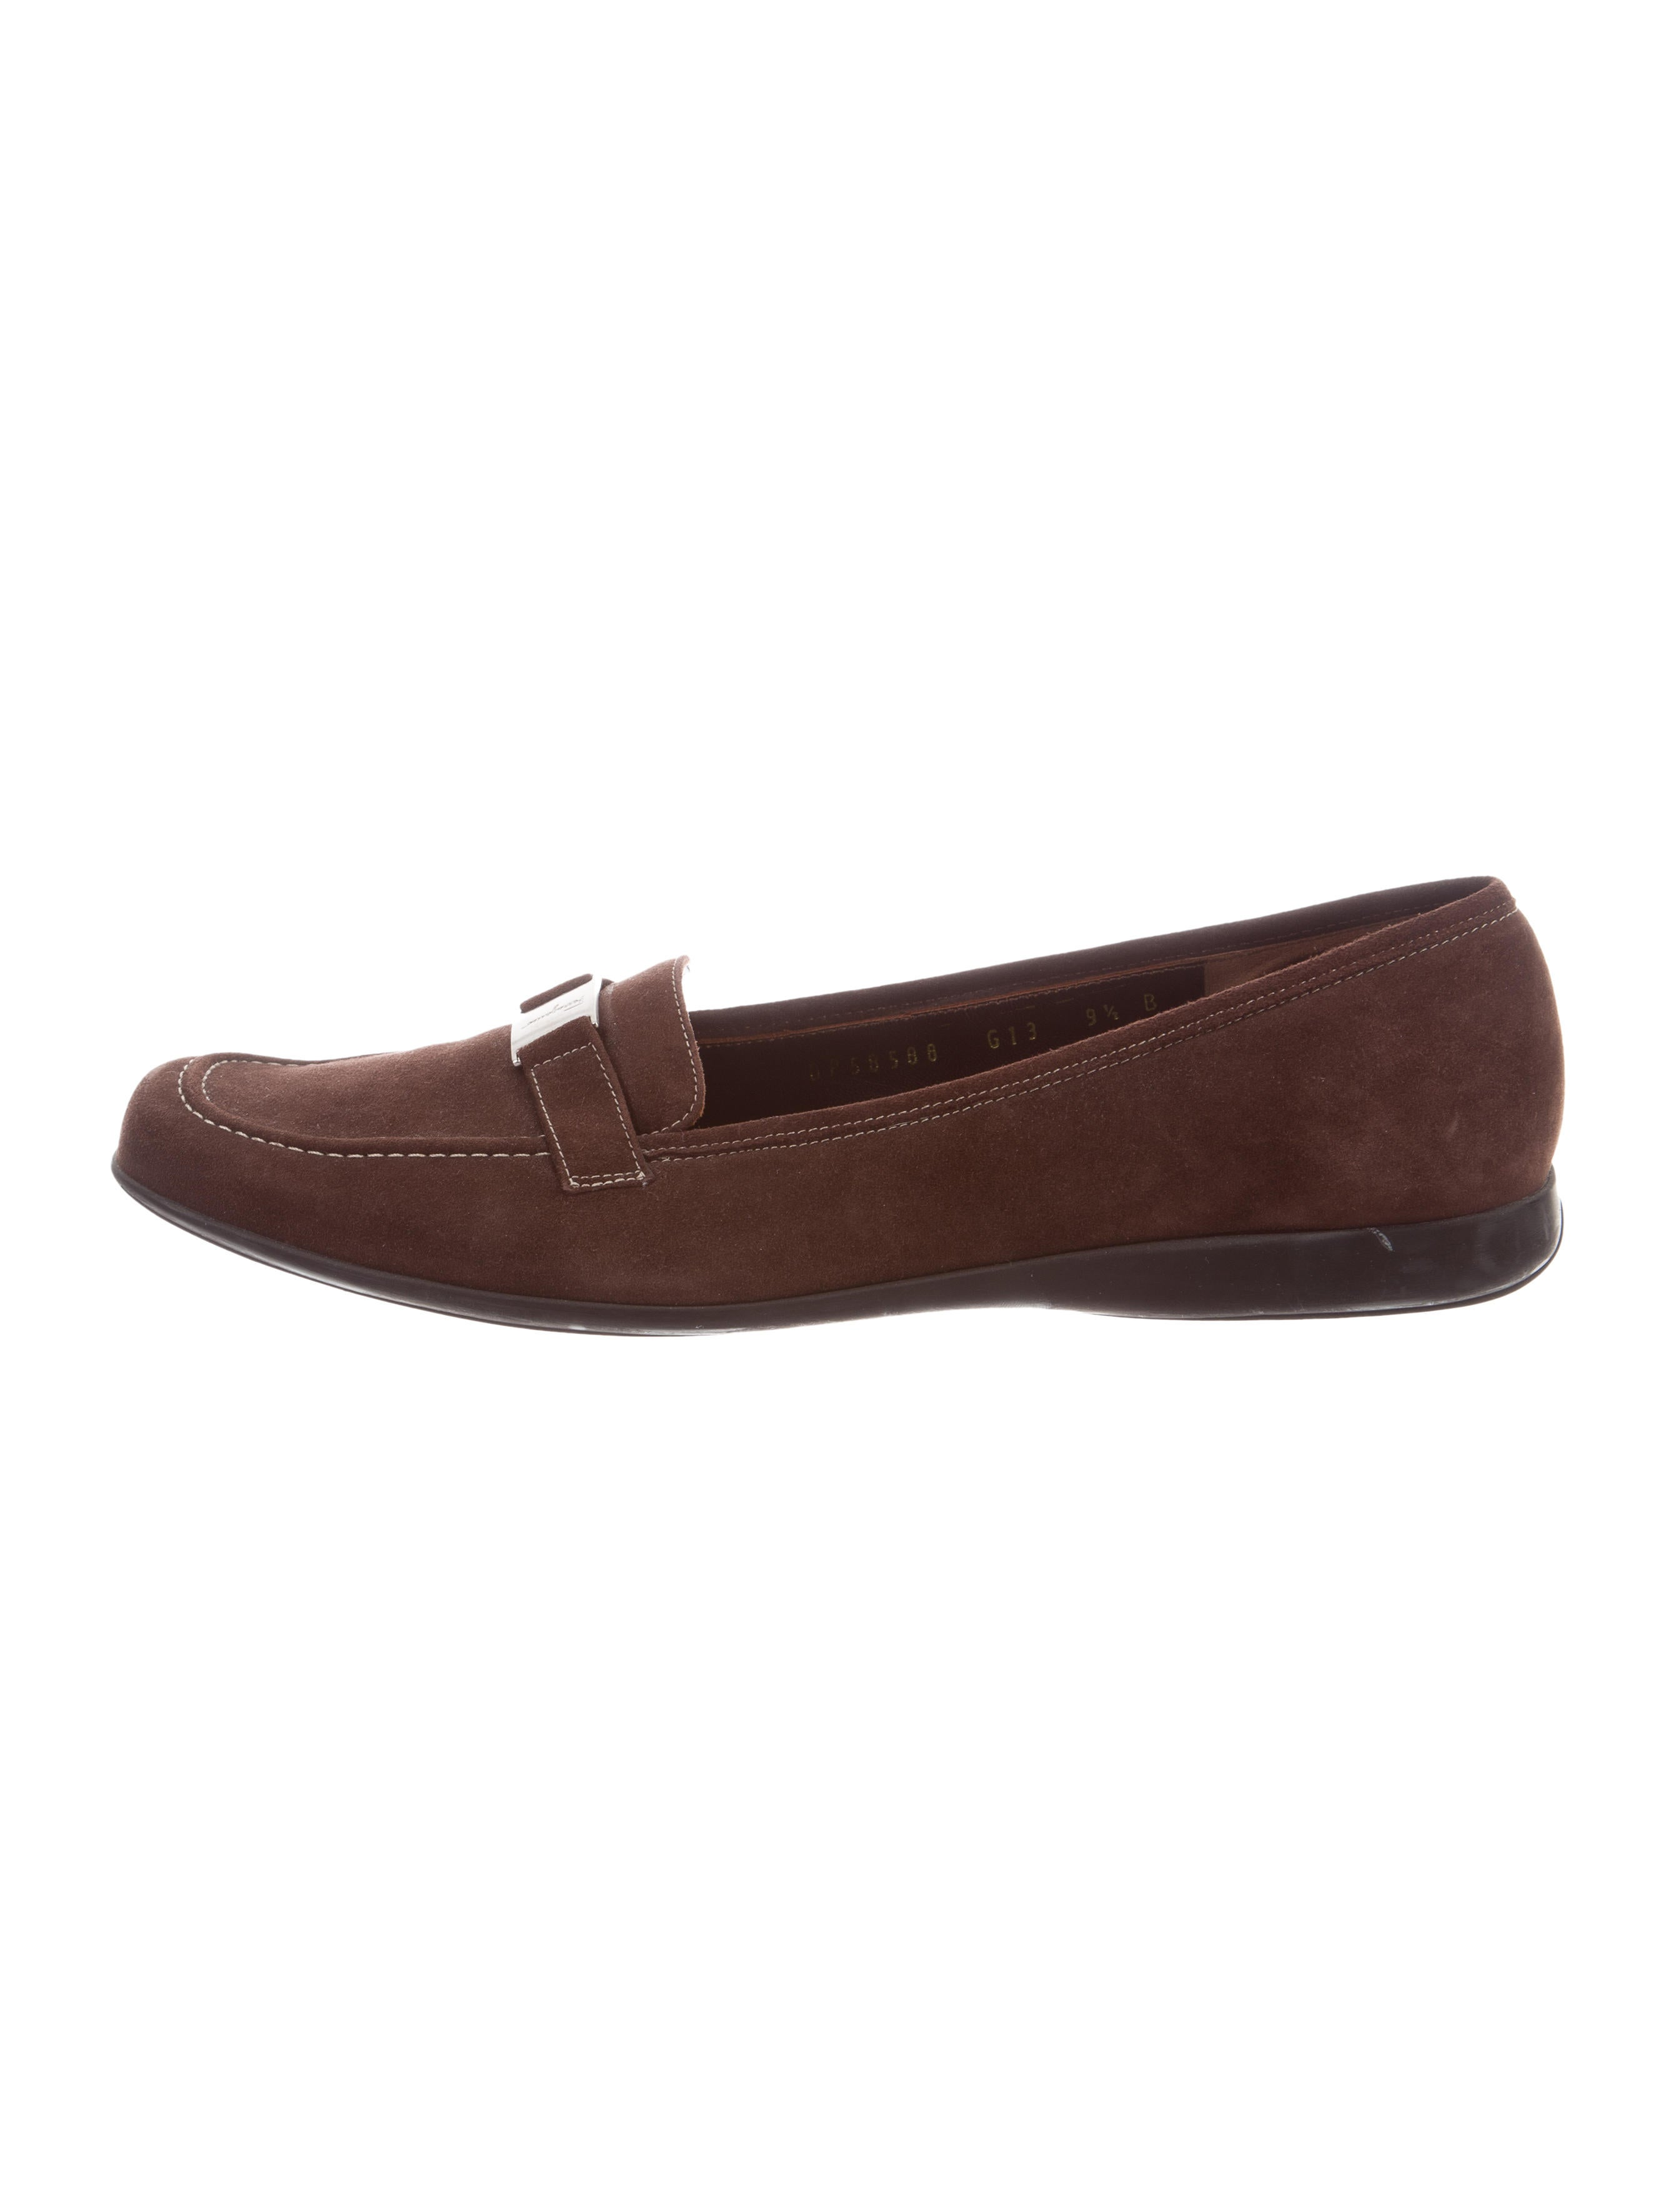 free shipping visit new outlet exclusive Salvatore Ferragamo Fiamma Round-Toe Loafers w/ Tags cost sale online fake sale online sale cheap prices 0fujDm18